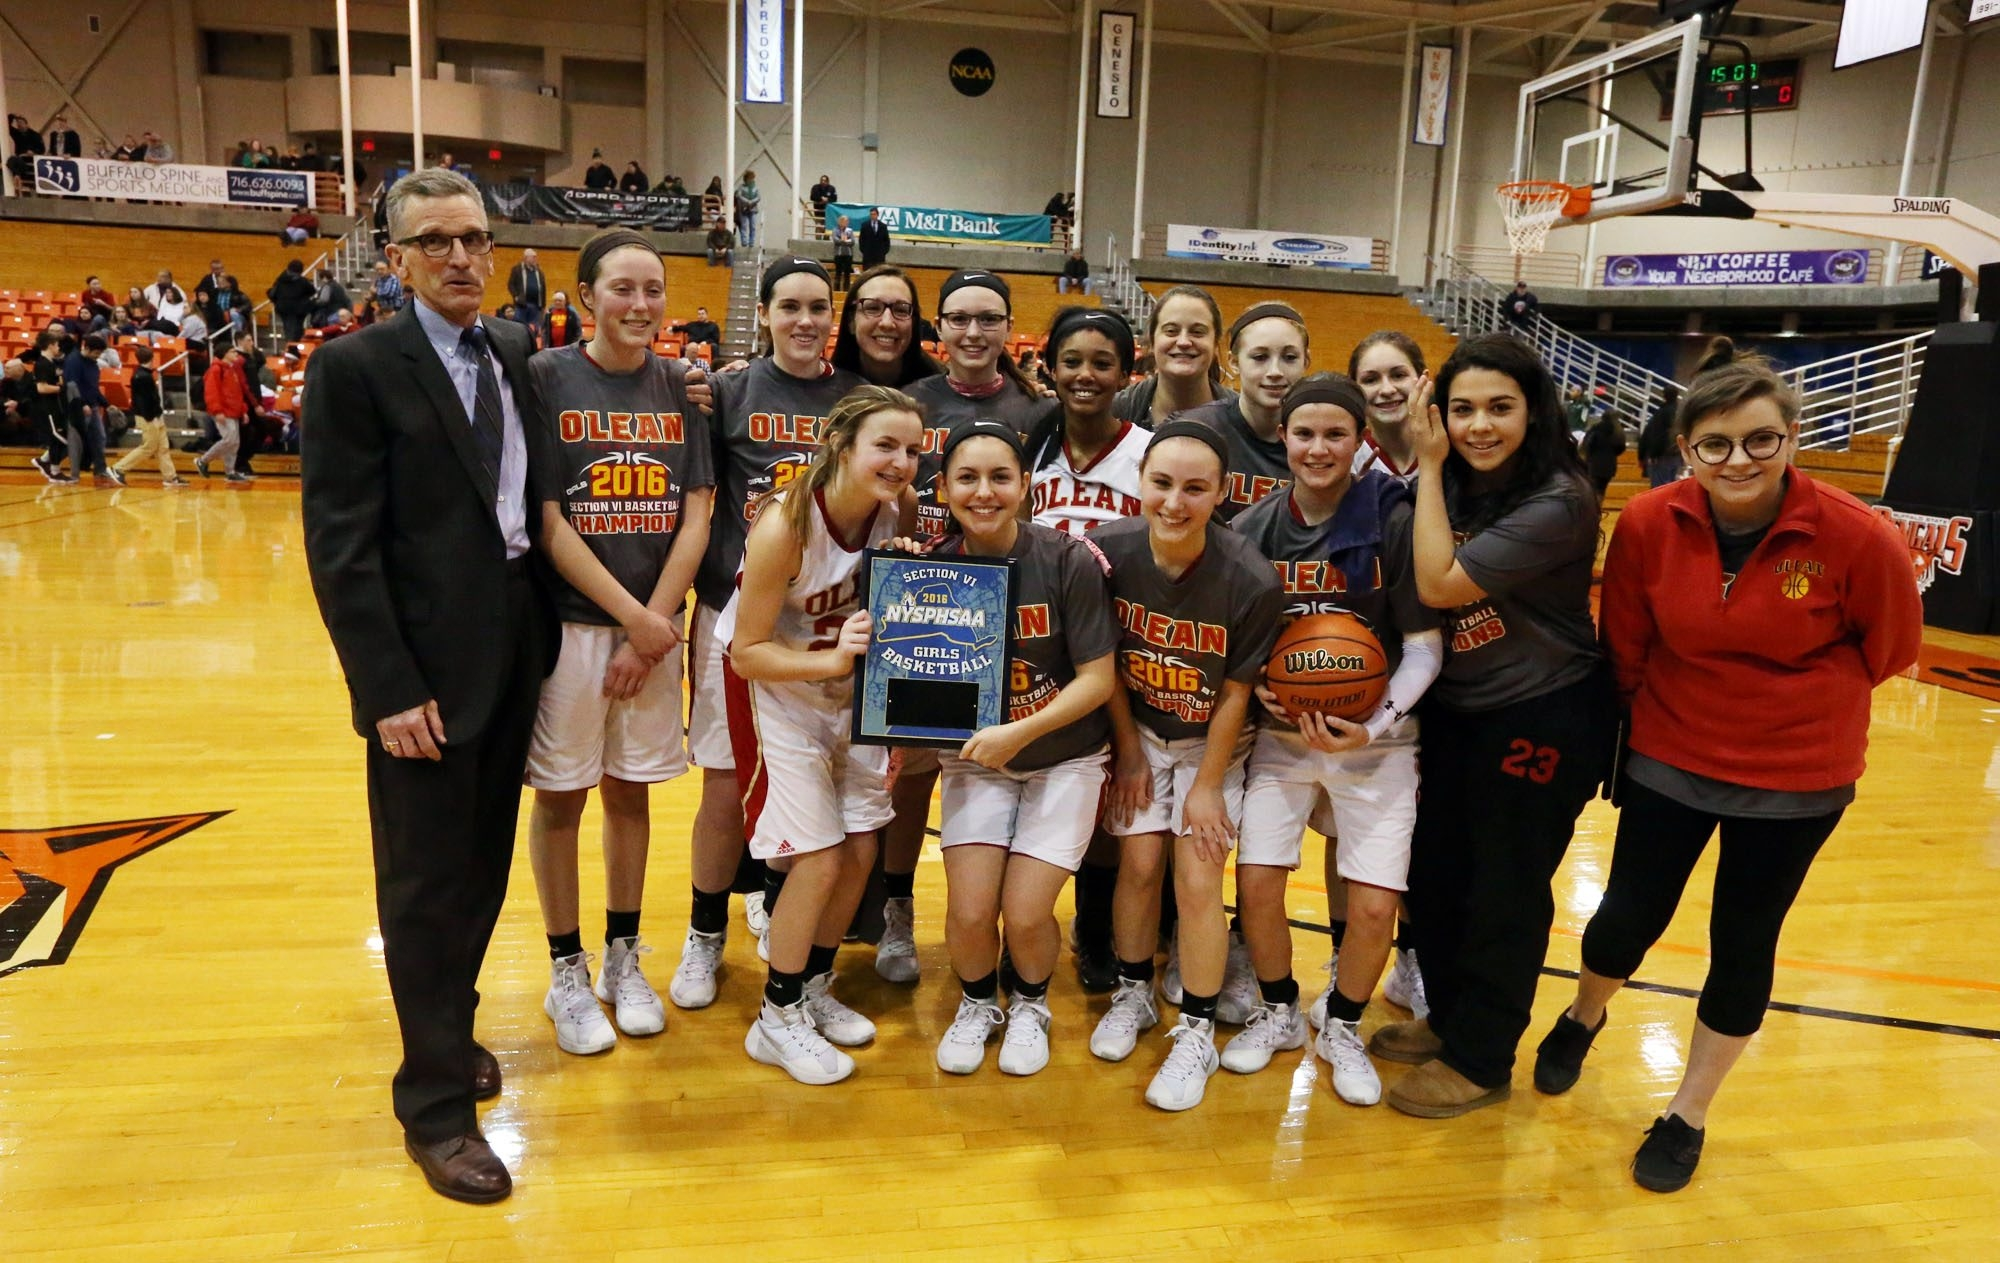 Coach Randy Samuelson and his Olean Huskies celebrate their Section VI Class B championship win at the Buffalo State Sports Arena on Wednesday night.